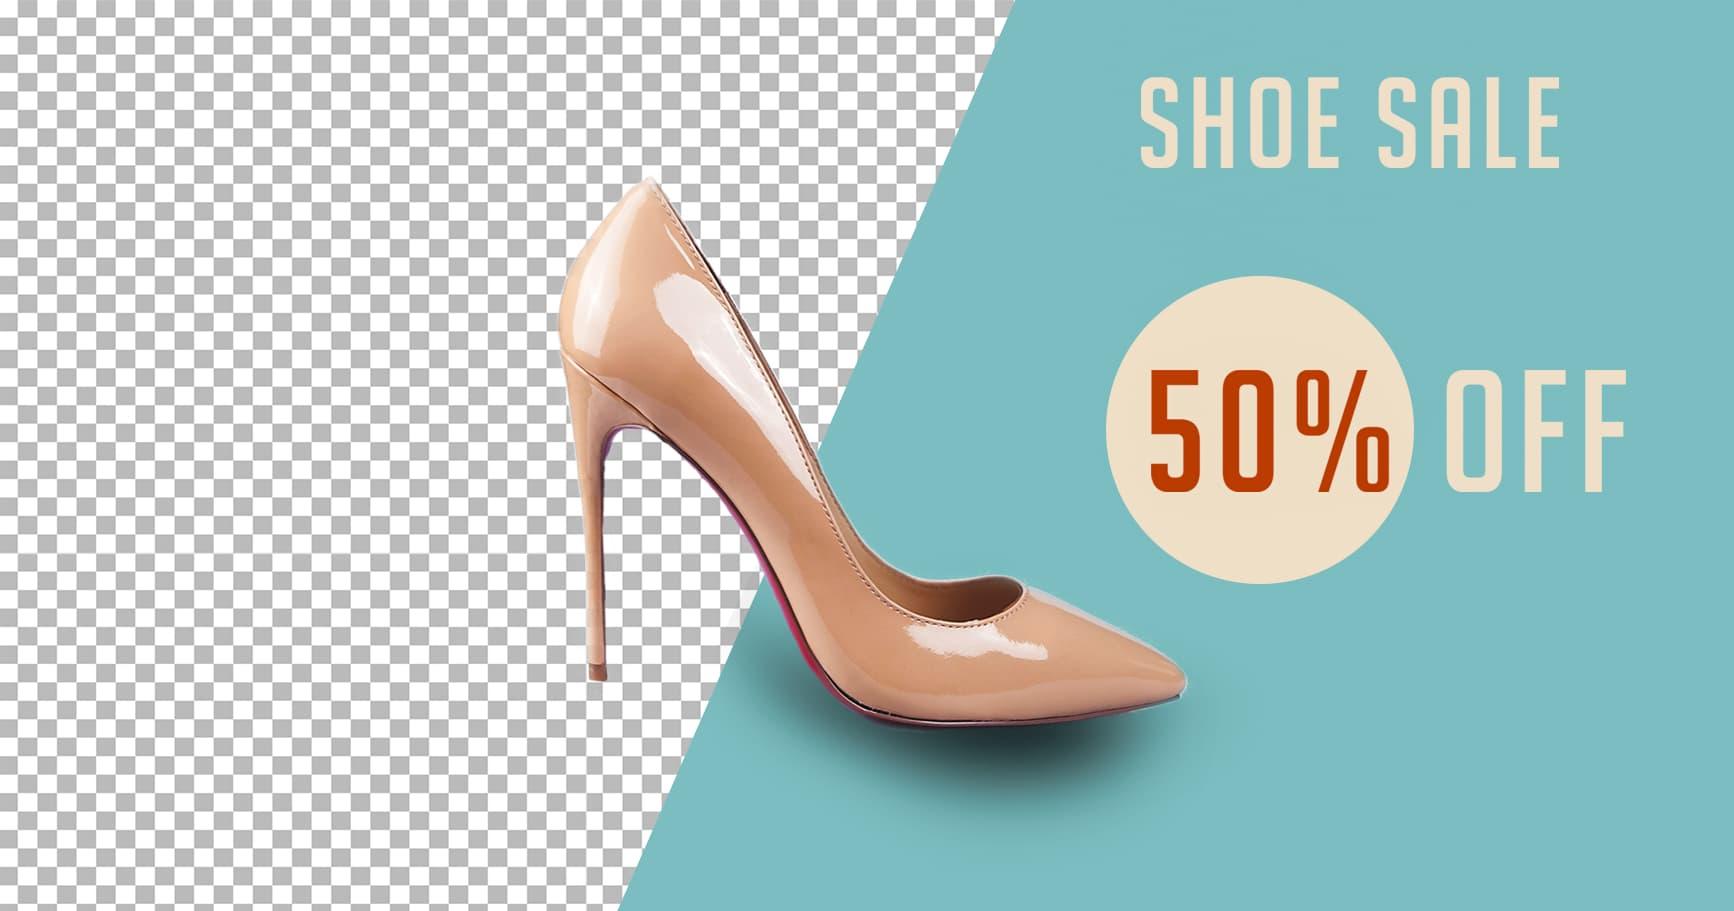 Background eraser, shoe promotion for a website, shoe sale ad